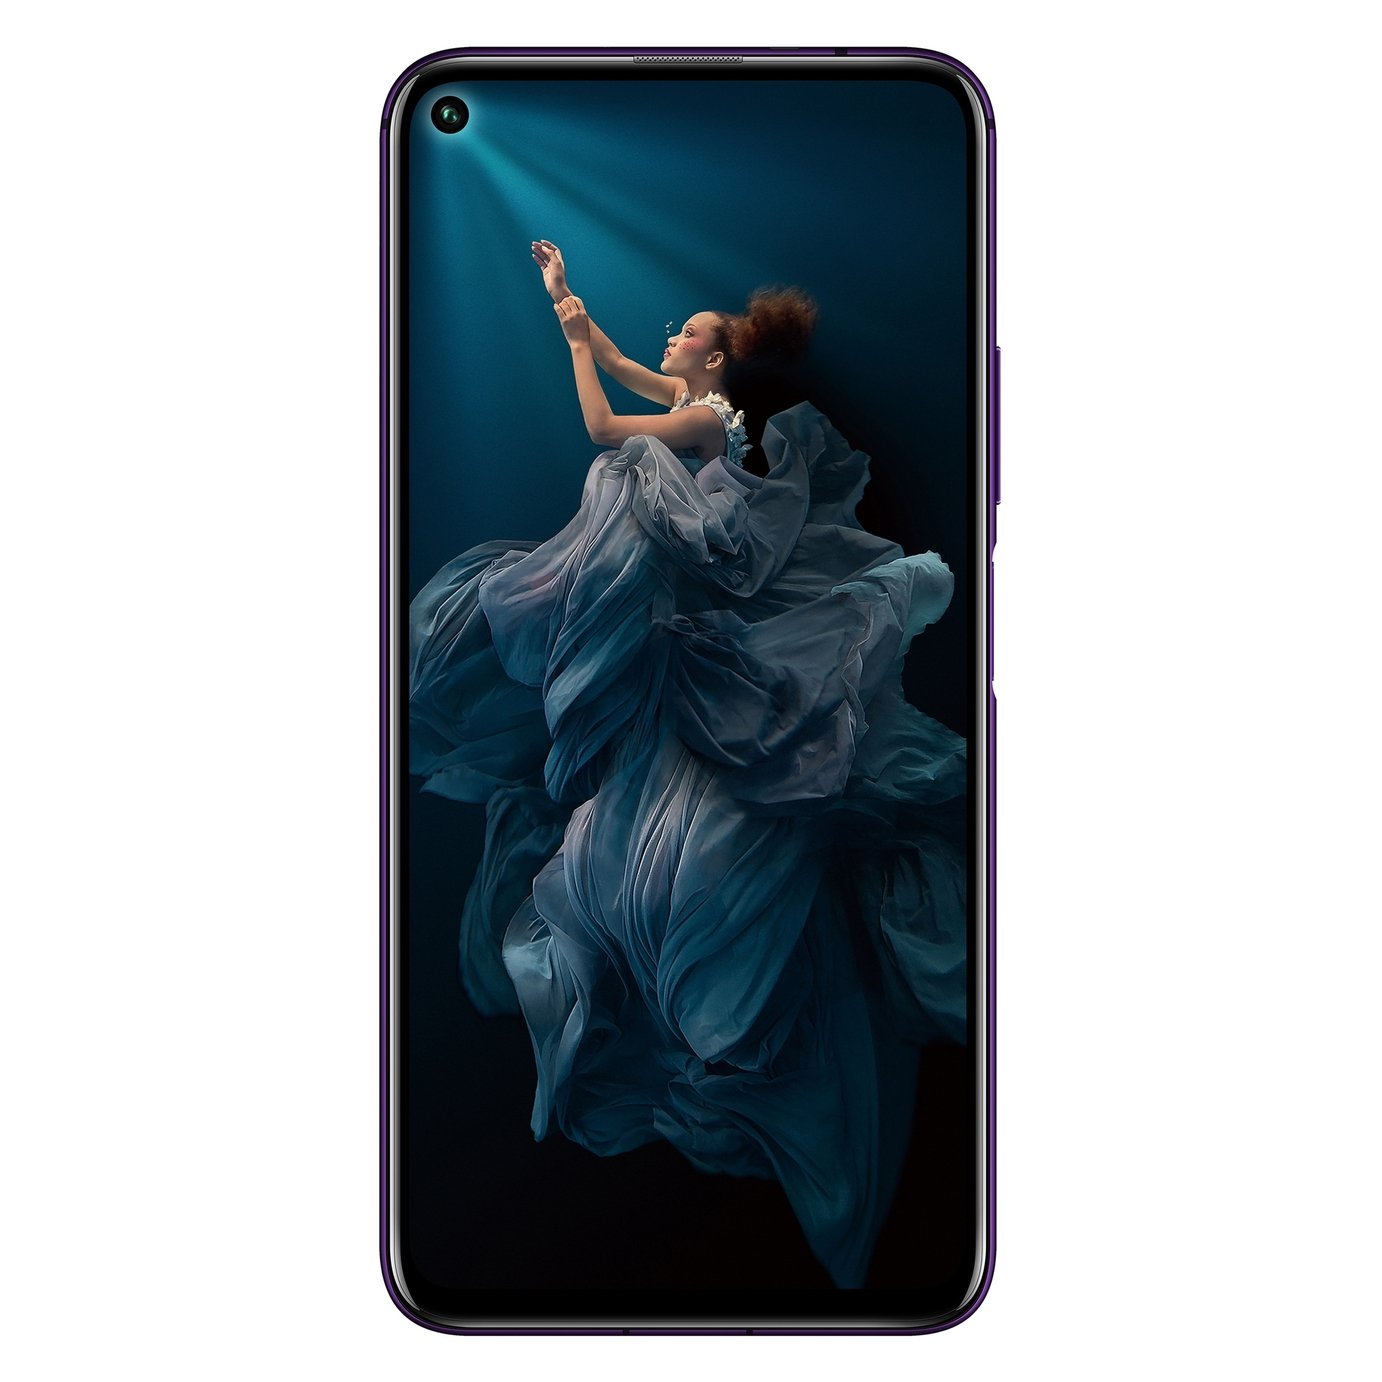 SIM Free HONOR 20 Pro 256GB Mobile Phone- Black